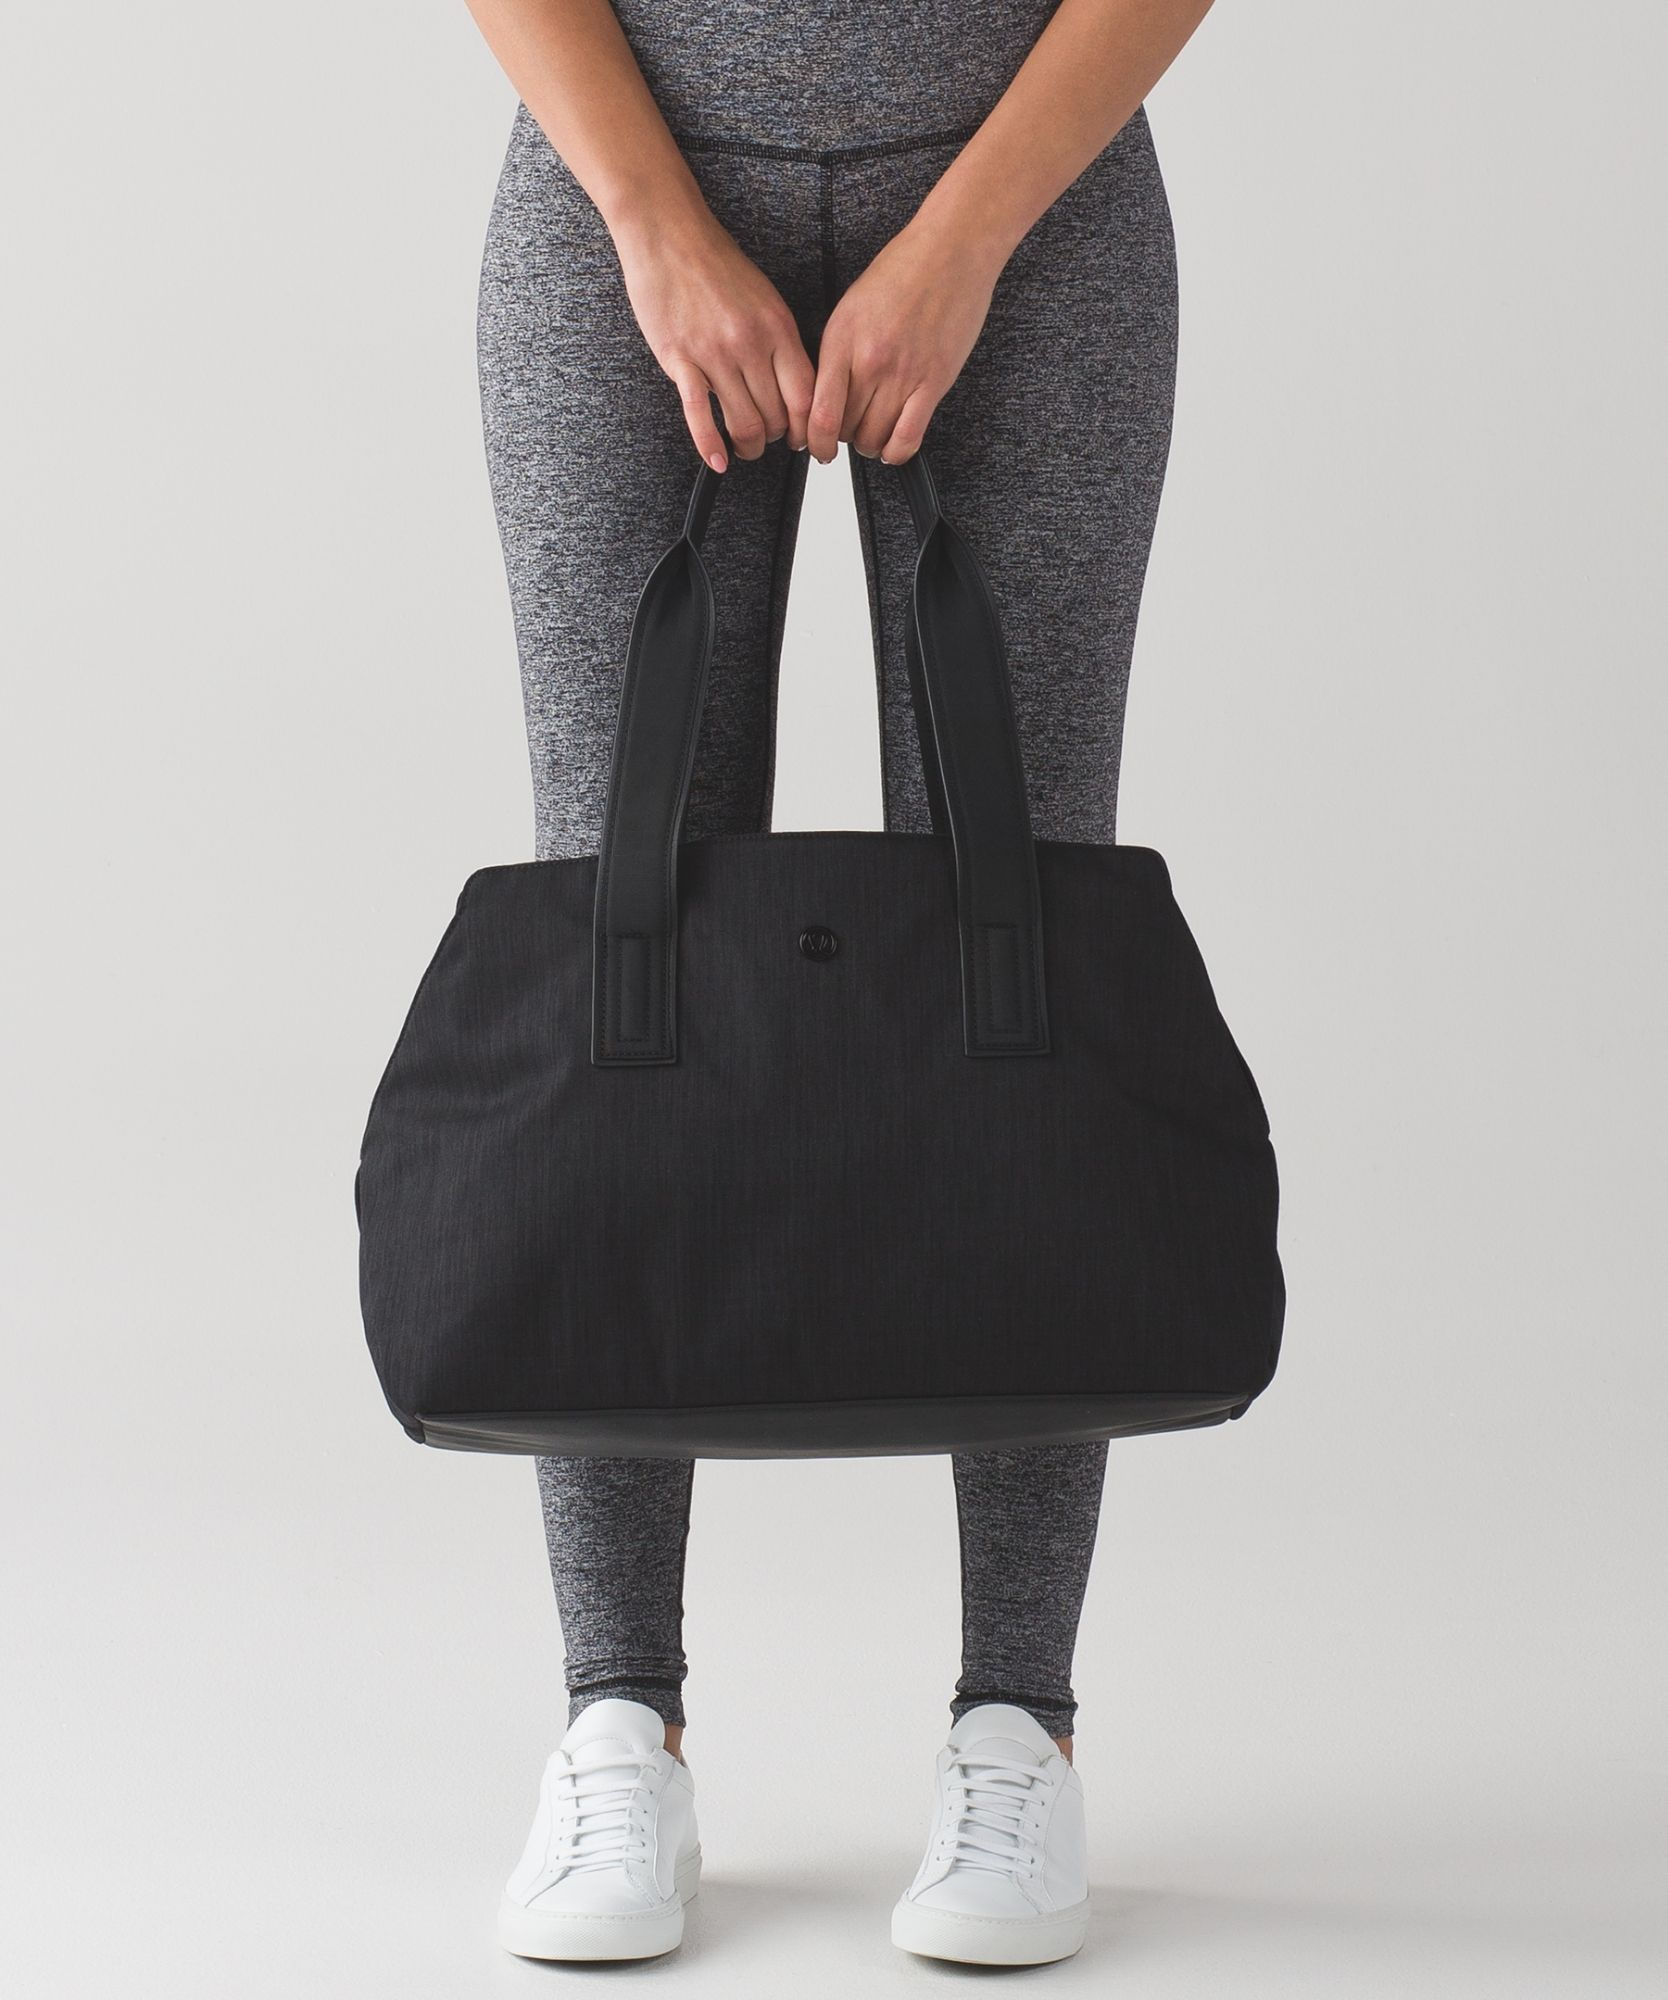 68a18eed456d Go Getter Bag (Heatproof) from  lululemon which doesn t scream